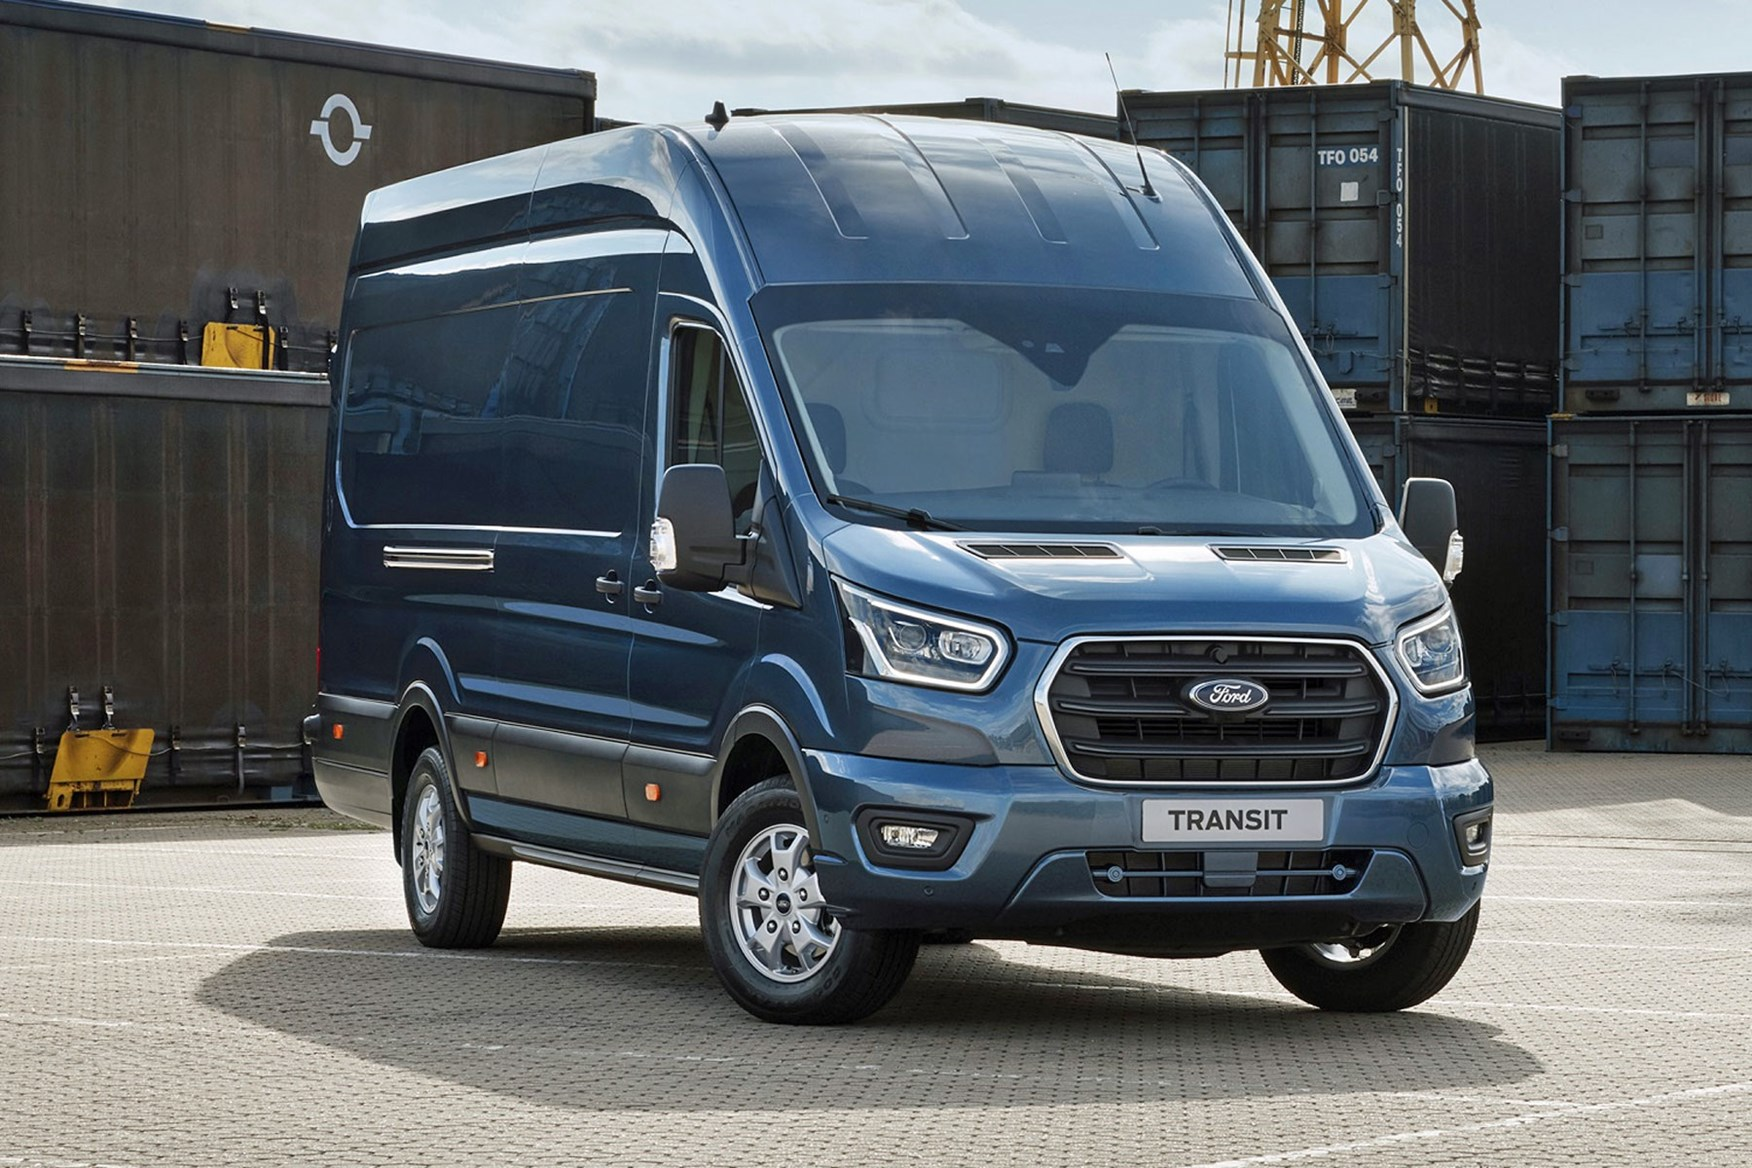 Ford Transit 2019 facelift - front view, blue